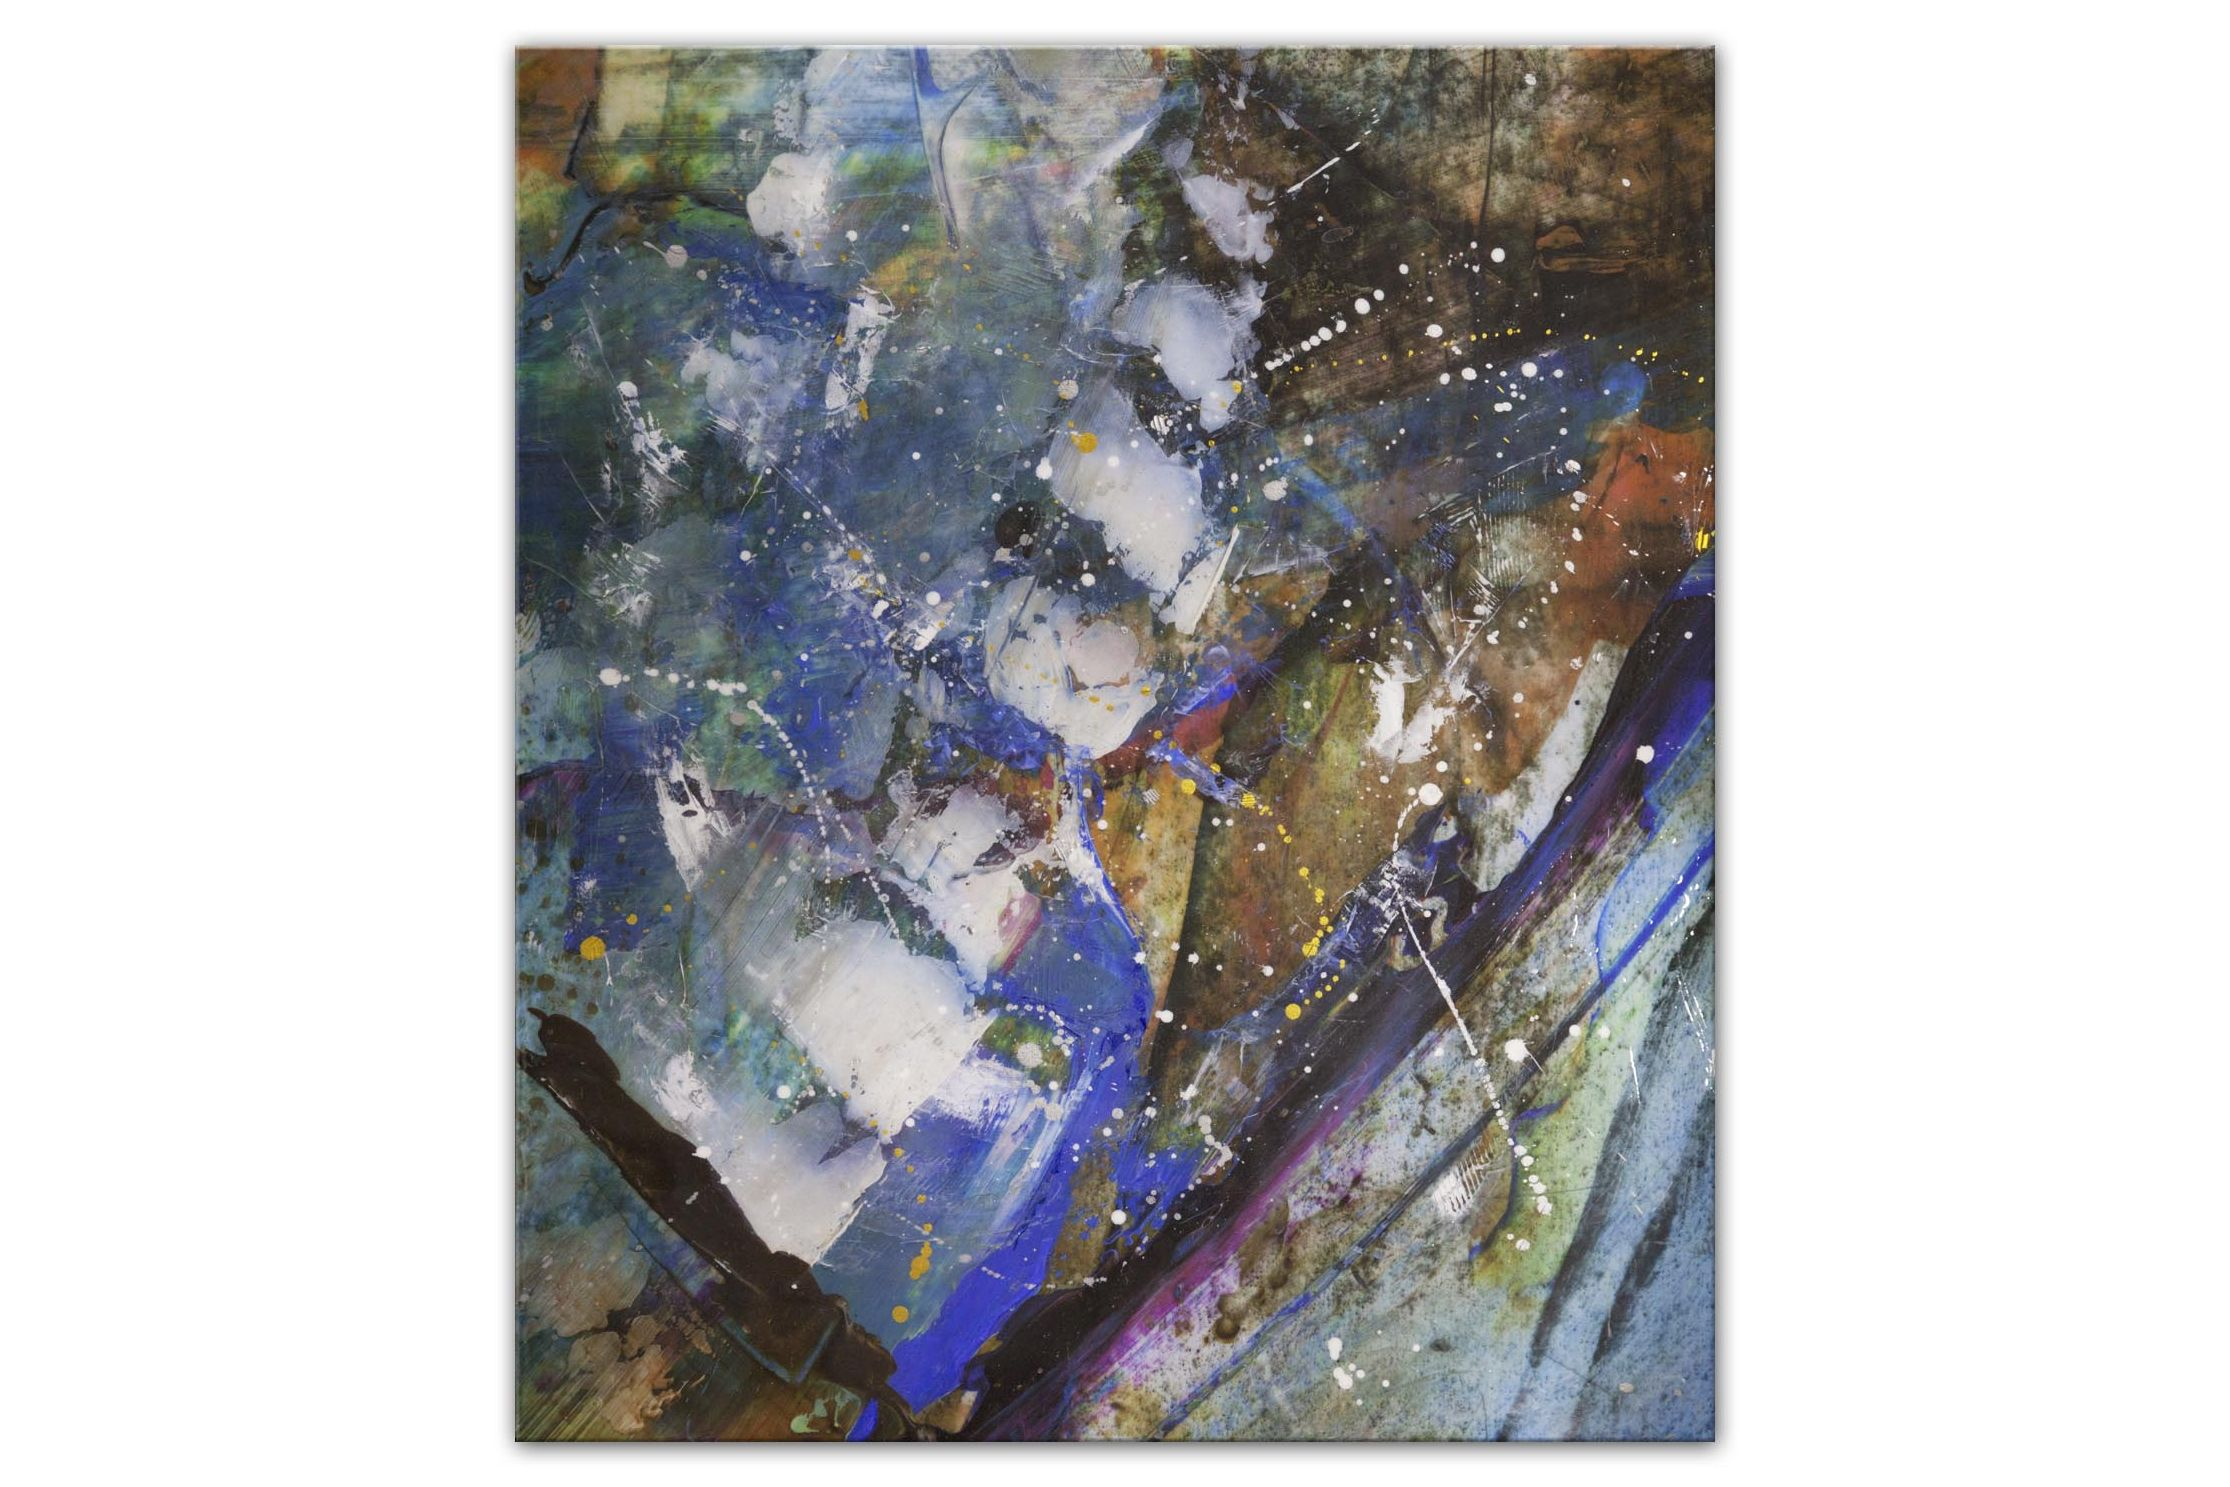 20-03-9820-Abstract and colorful print on large canvas